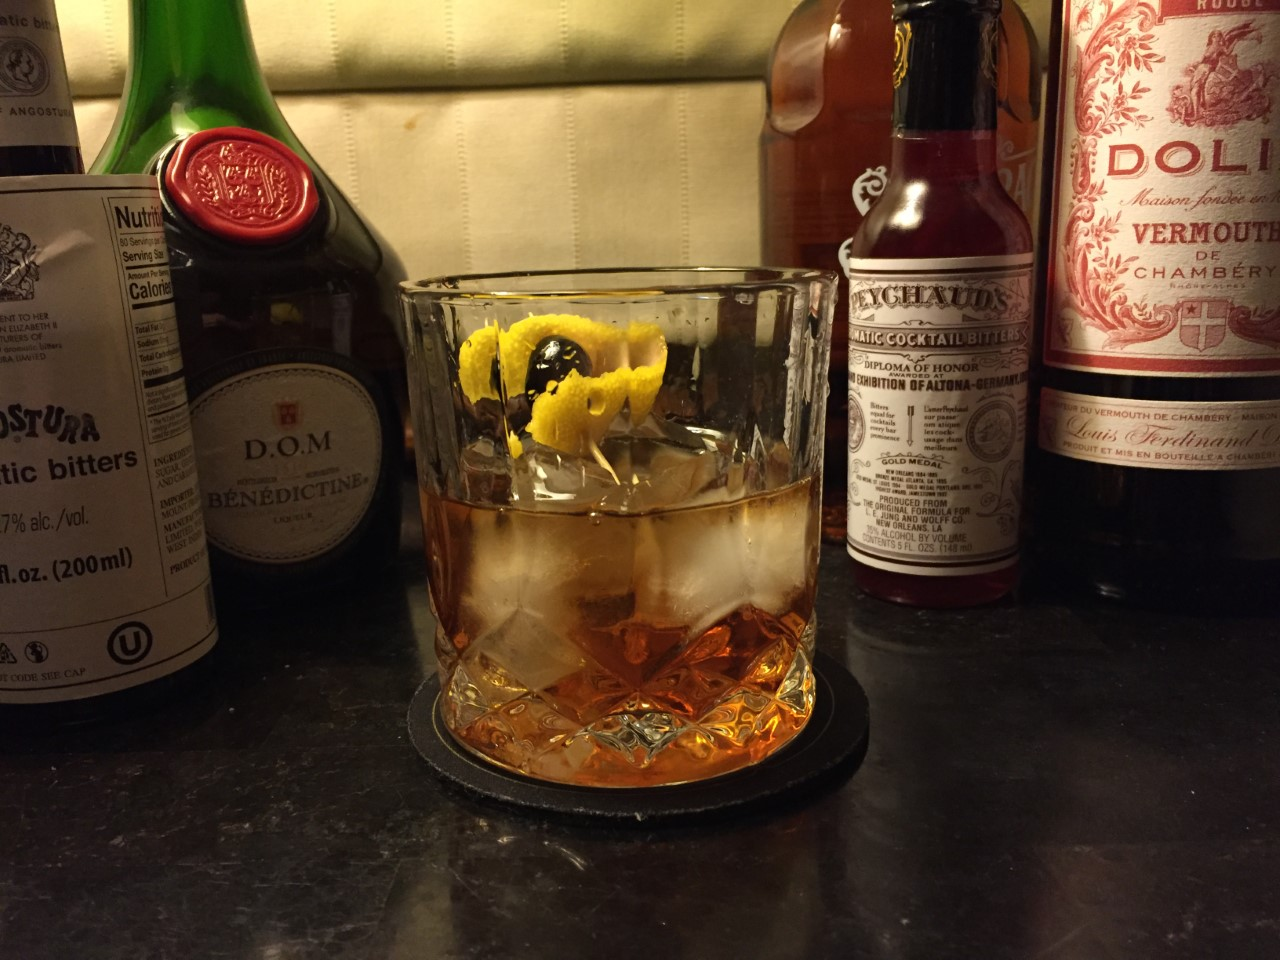 Vieux Carré cocktail recipie